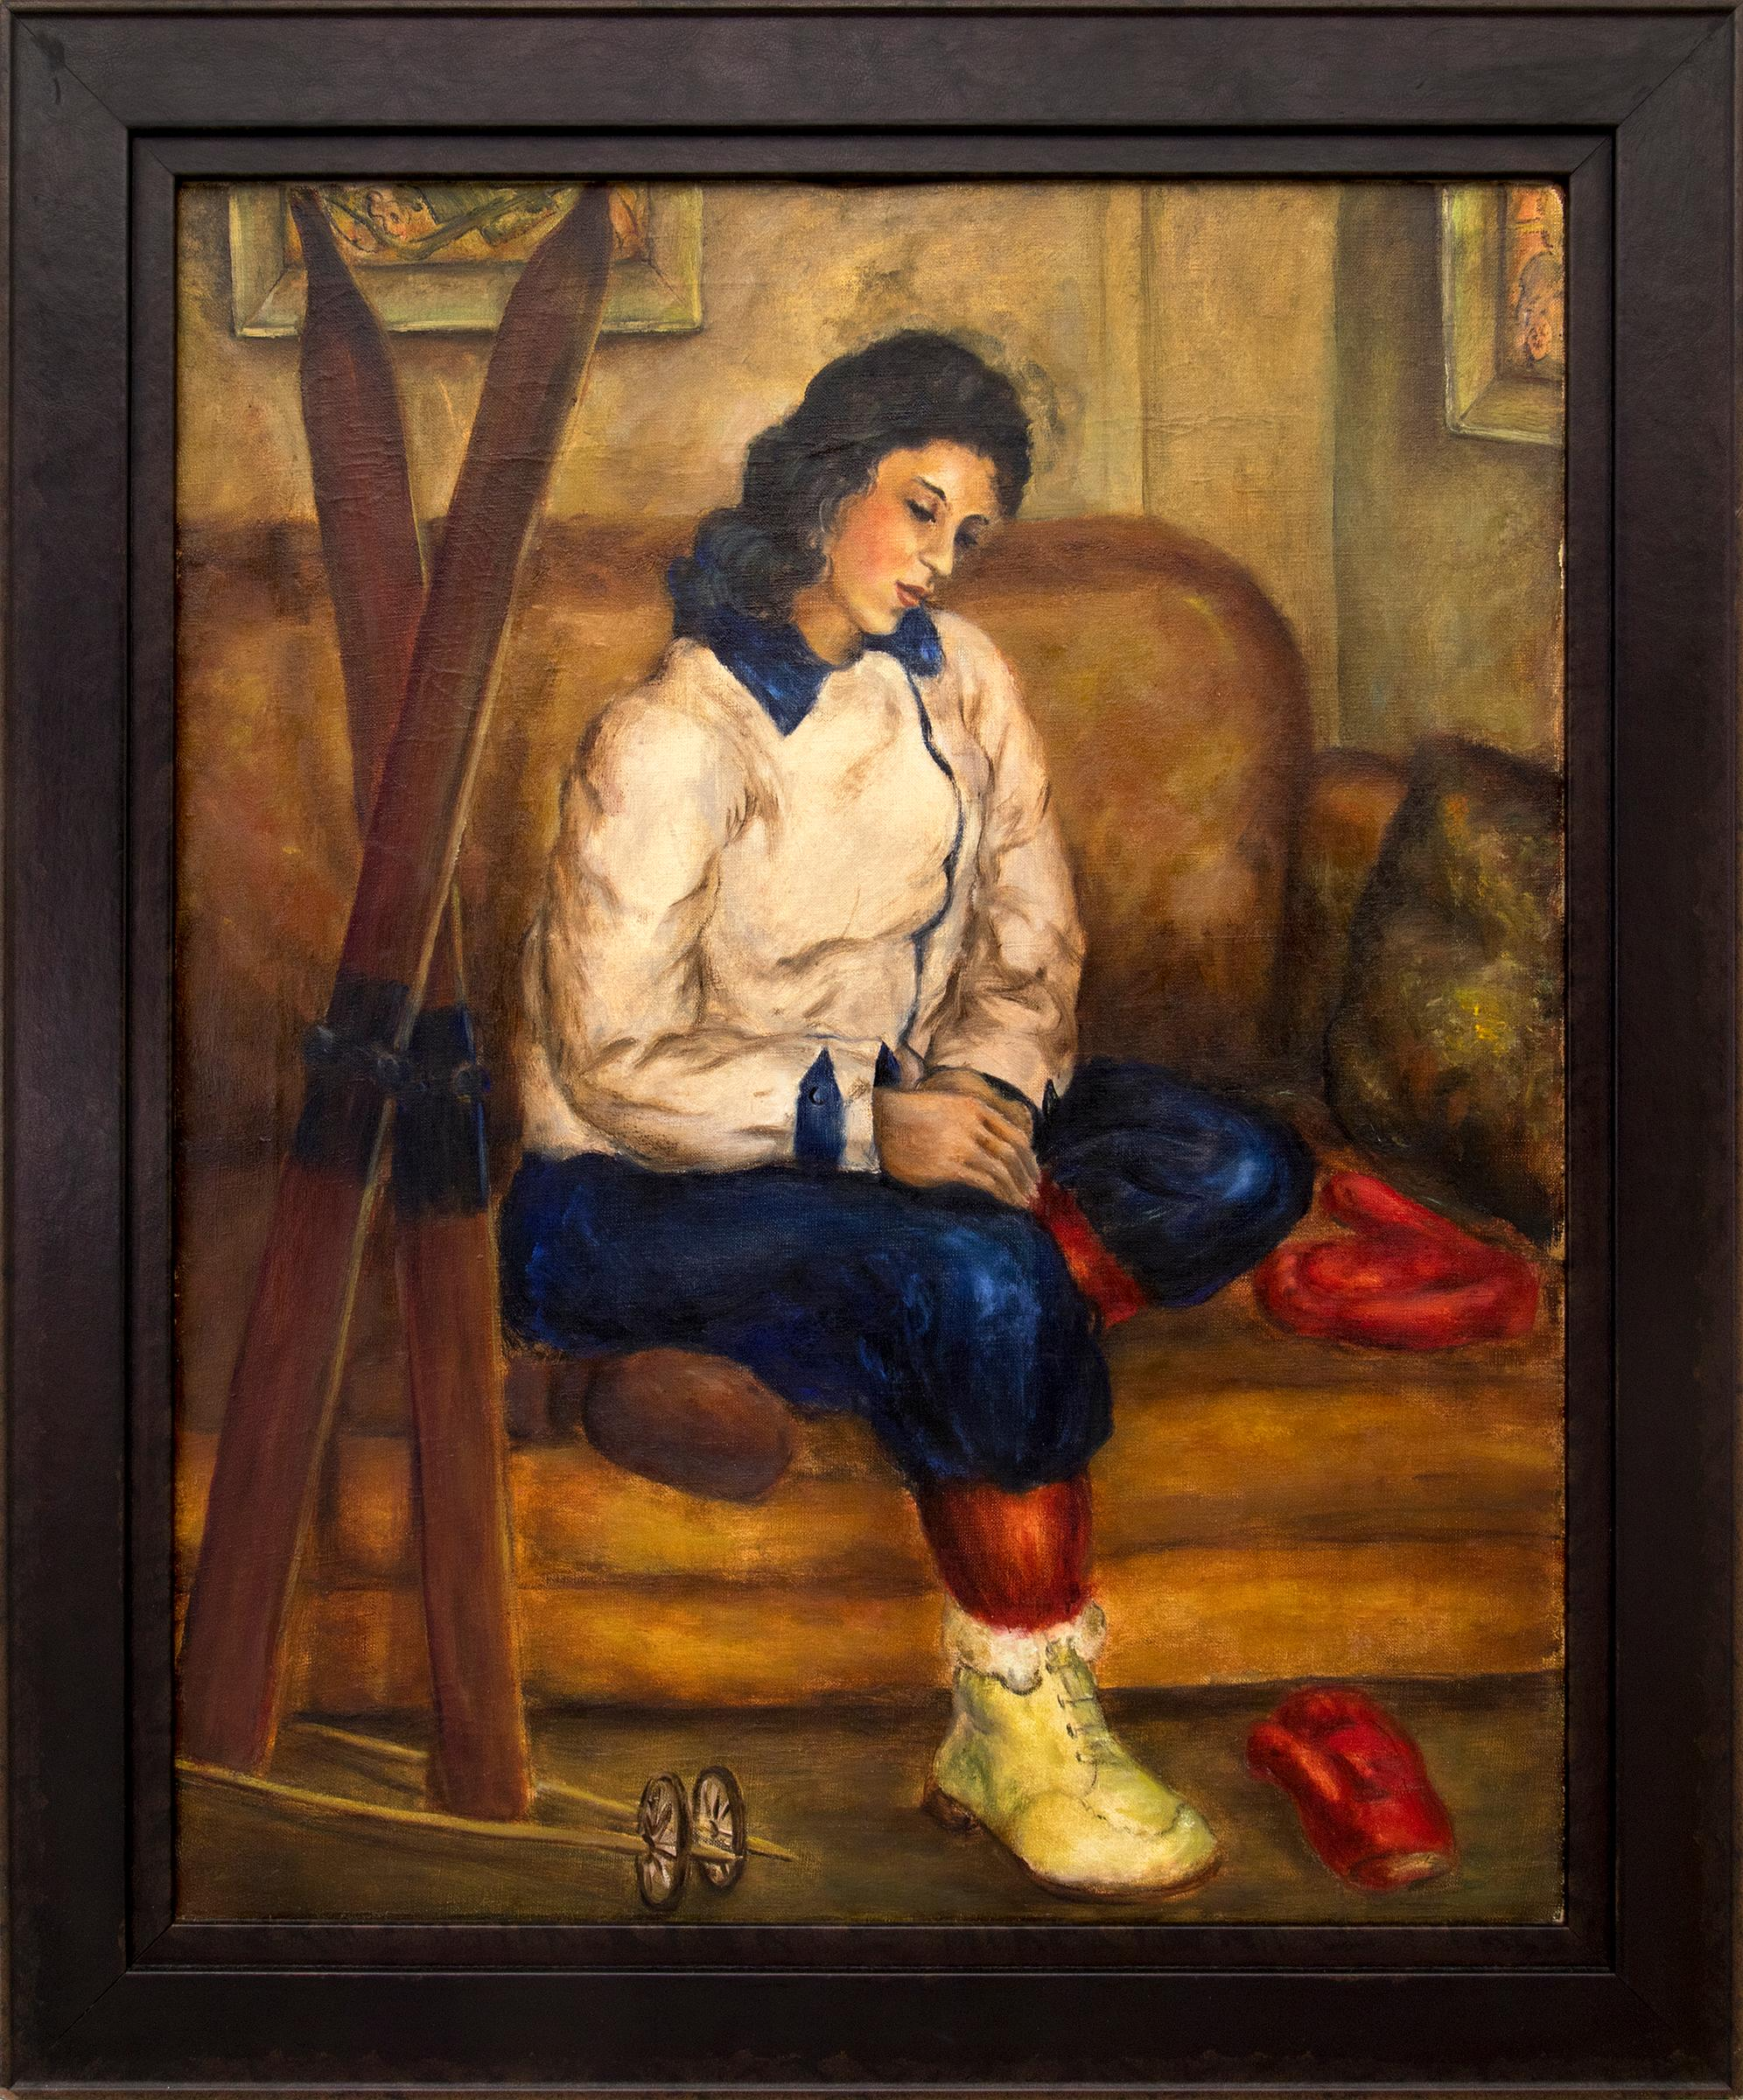 Adylin with Skis, Vintage 1930s Painting, Apres Ski, Cabin,